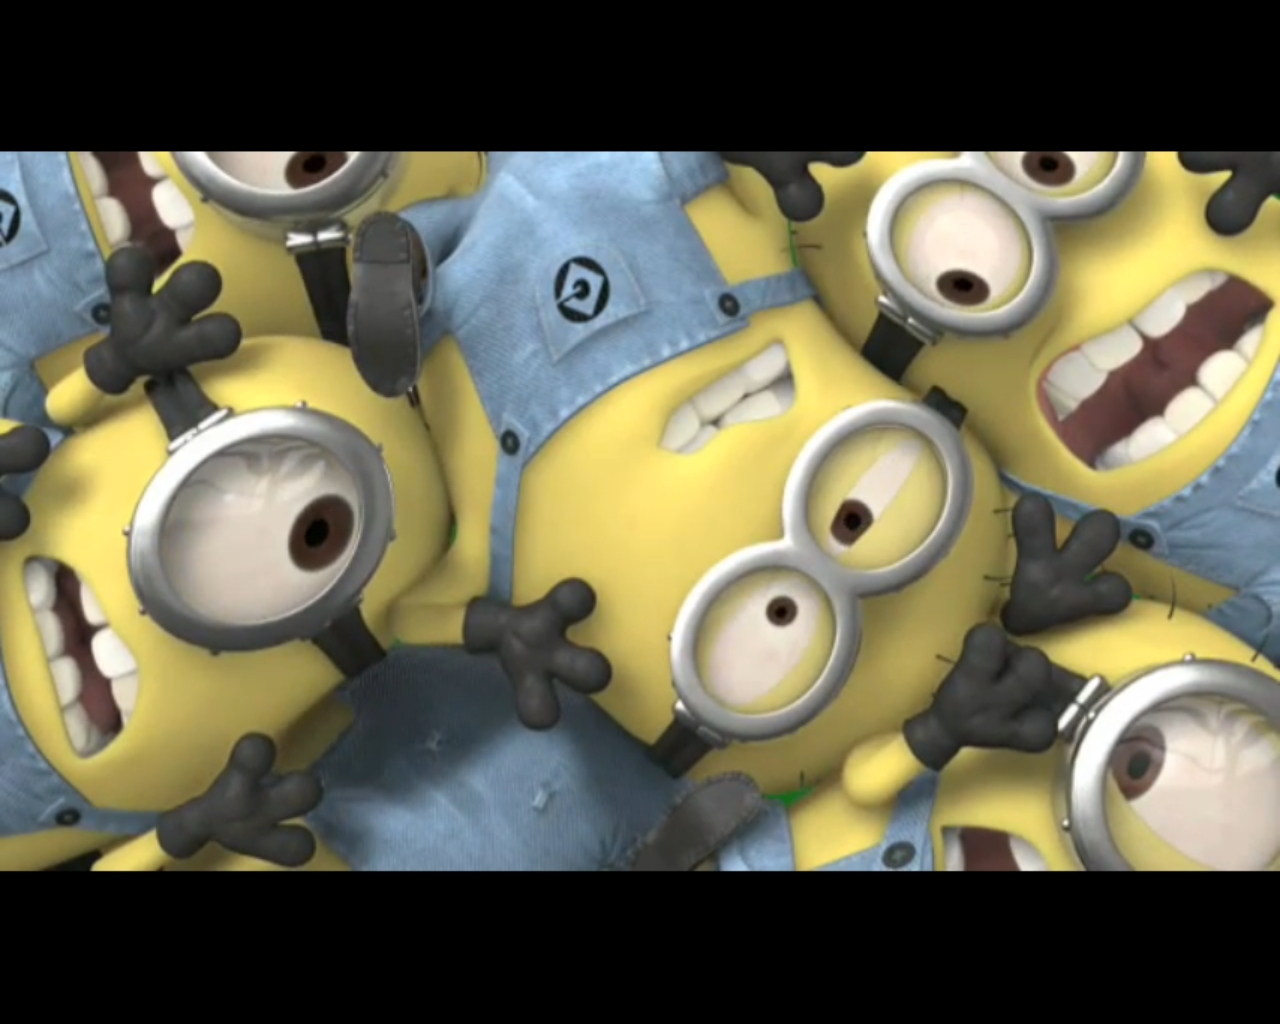 Minions Nice Free Images Oh My Fiesta In English